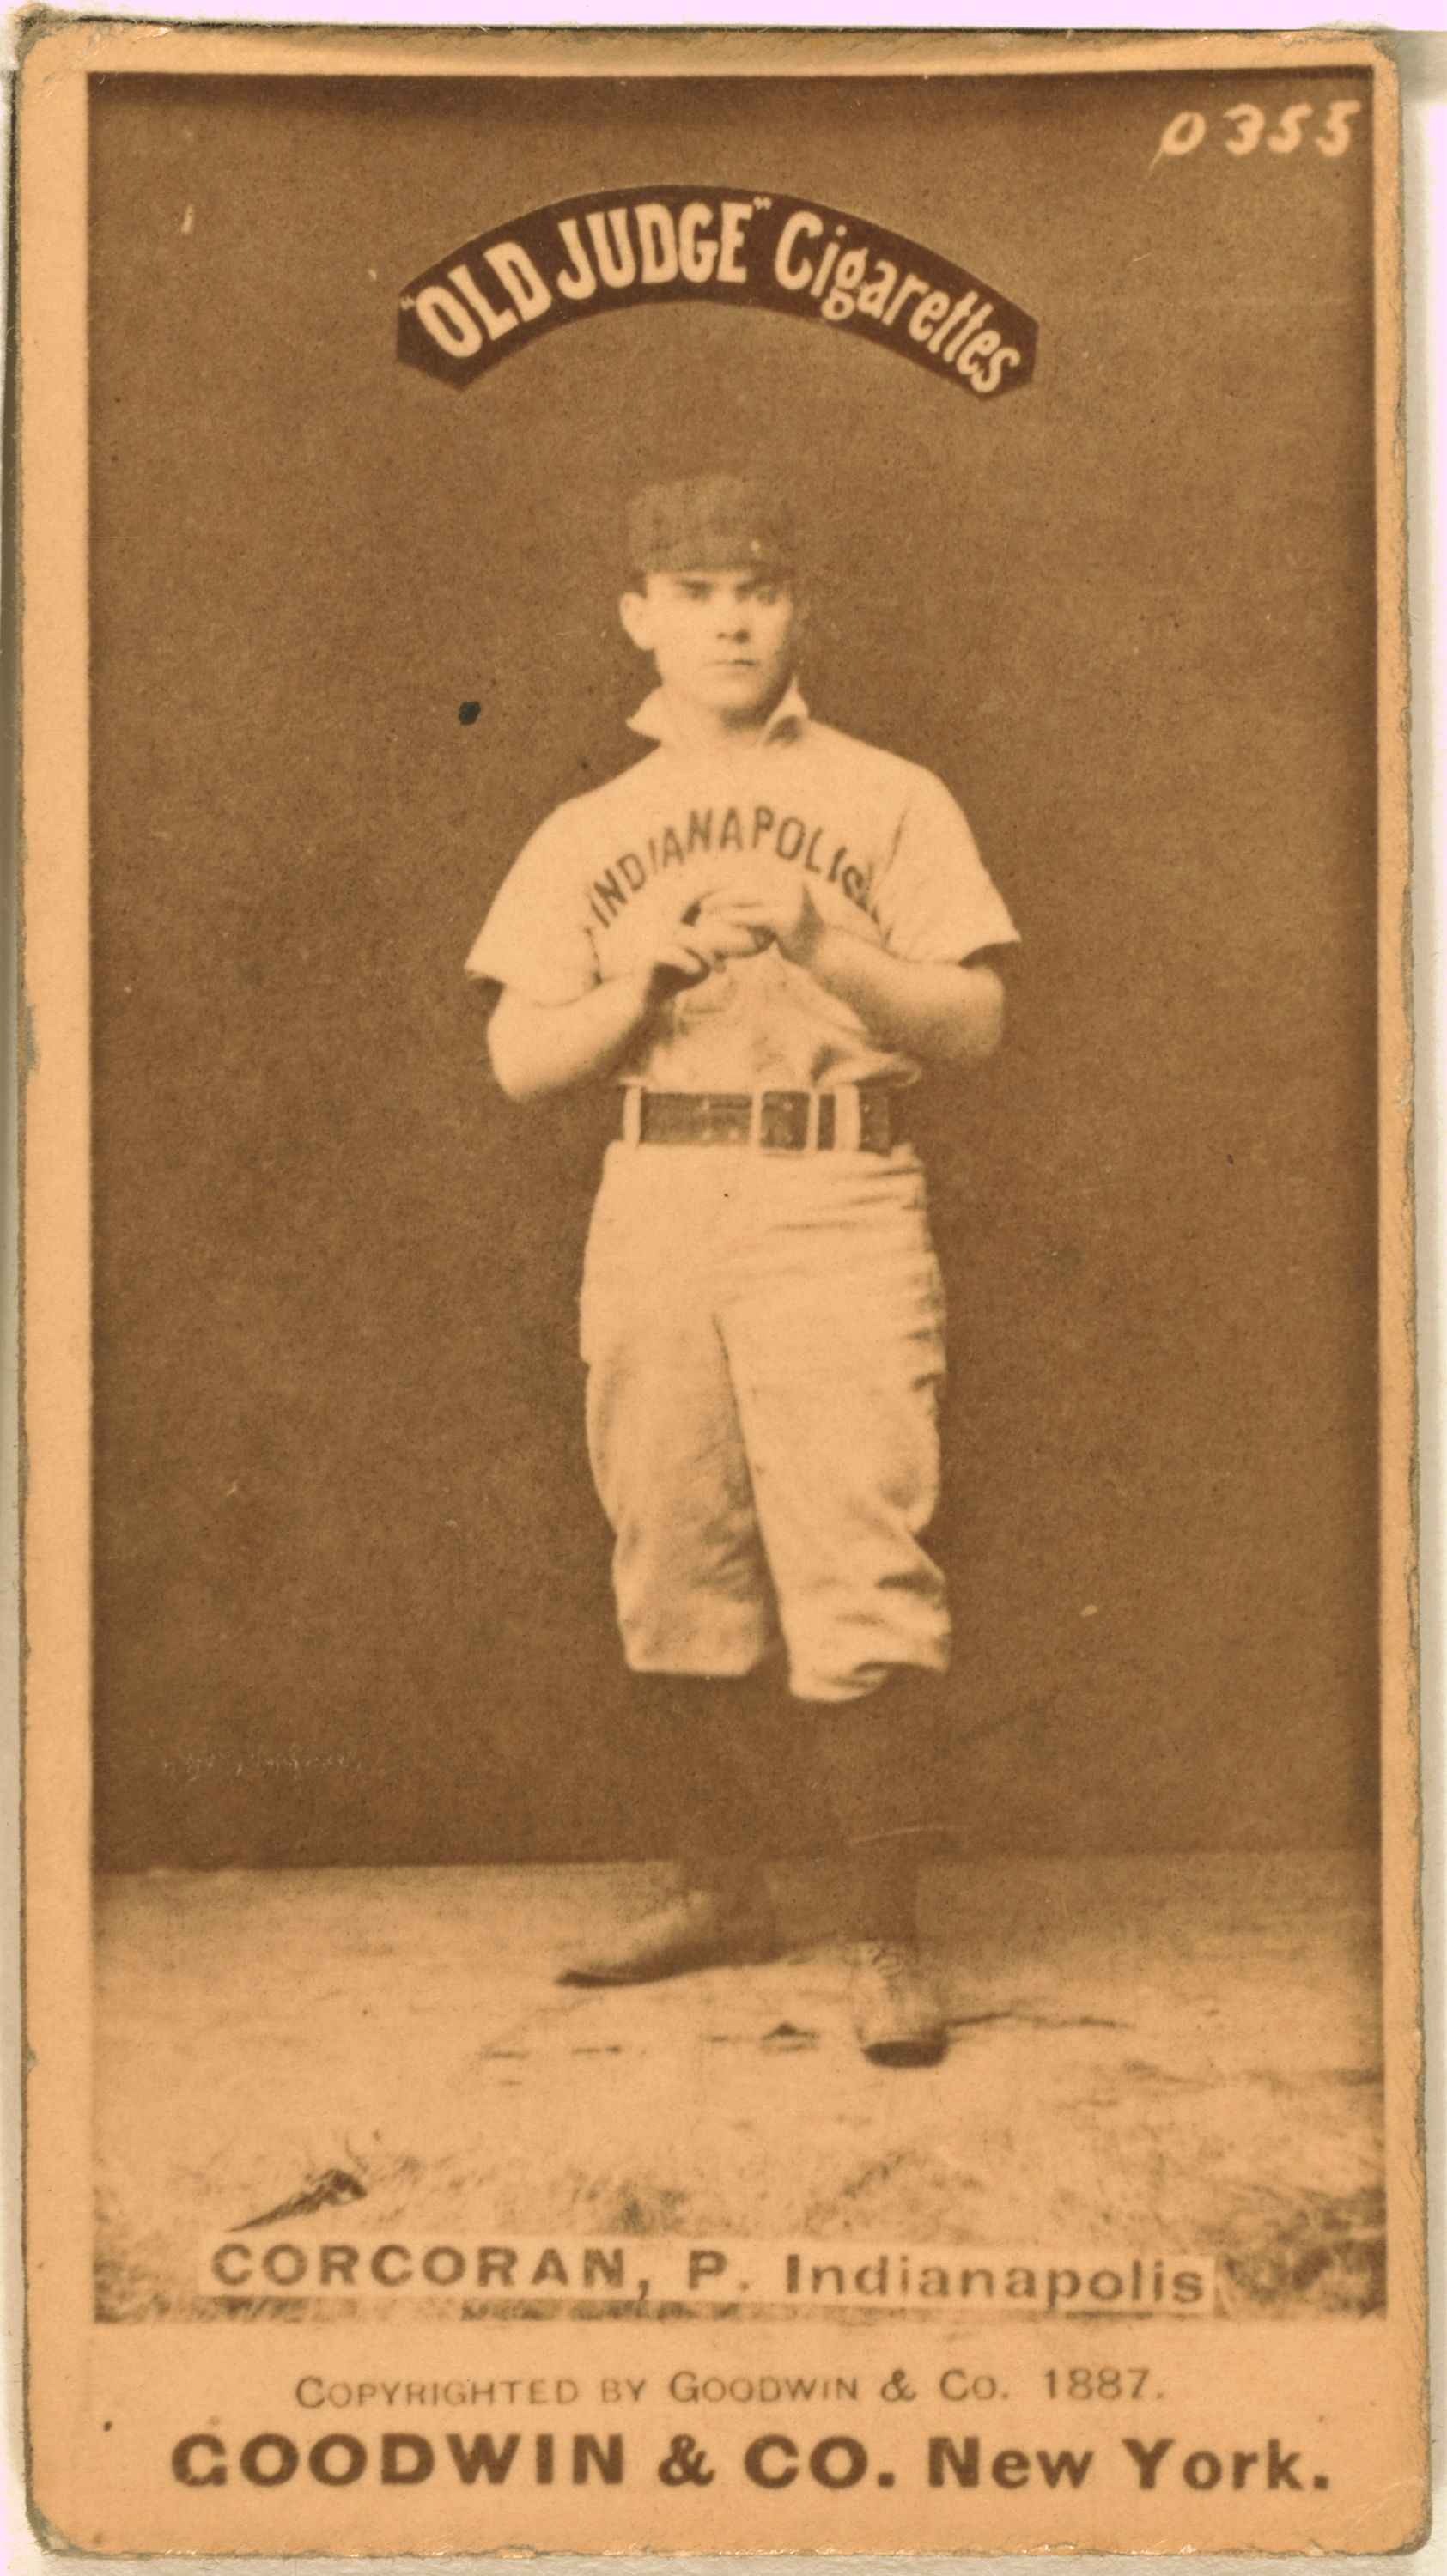 Larry_Corcoran_baseball_card